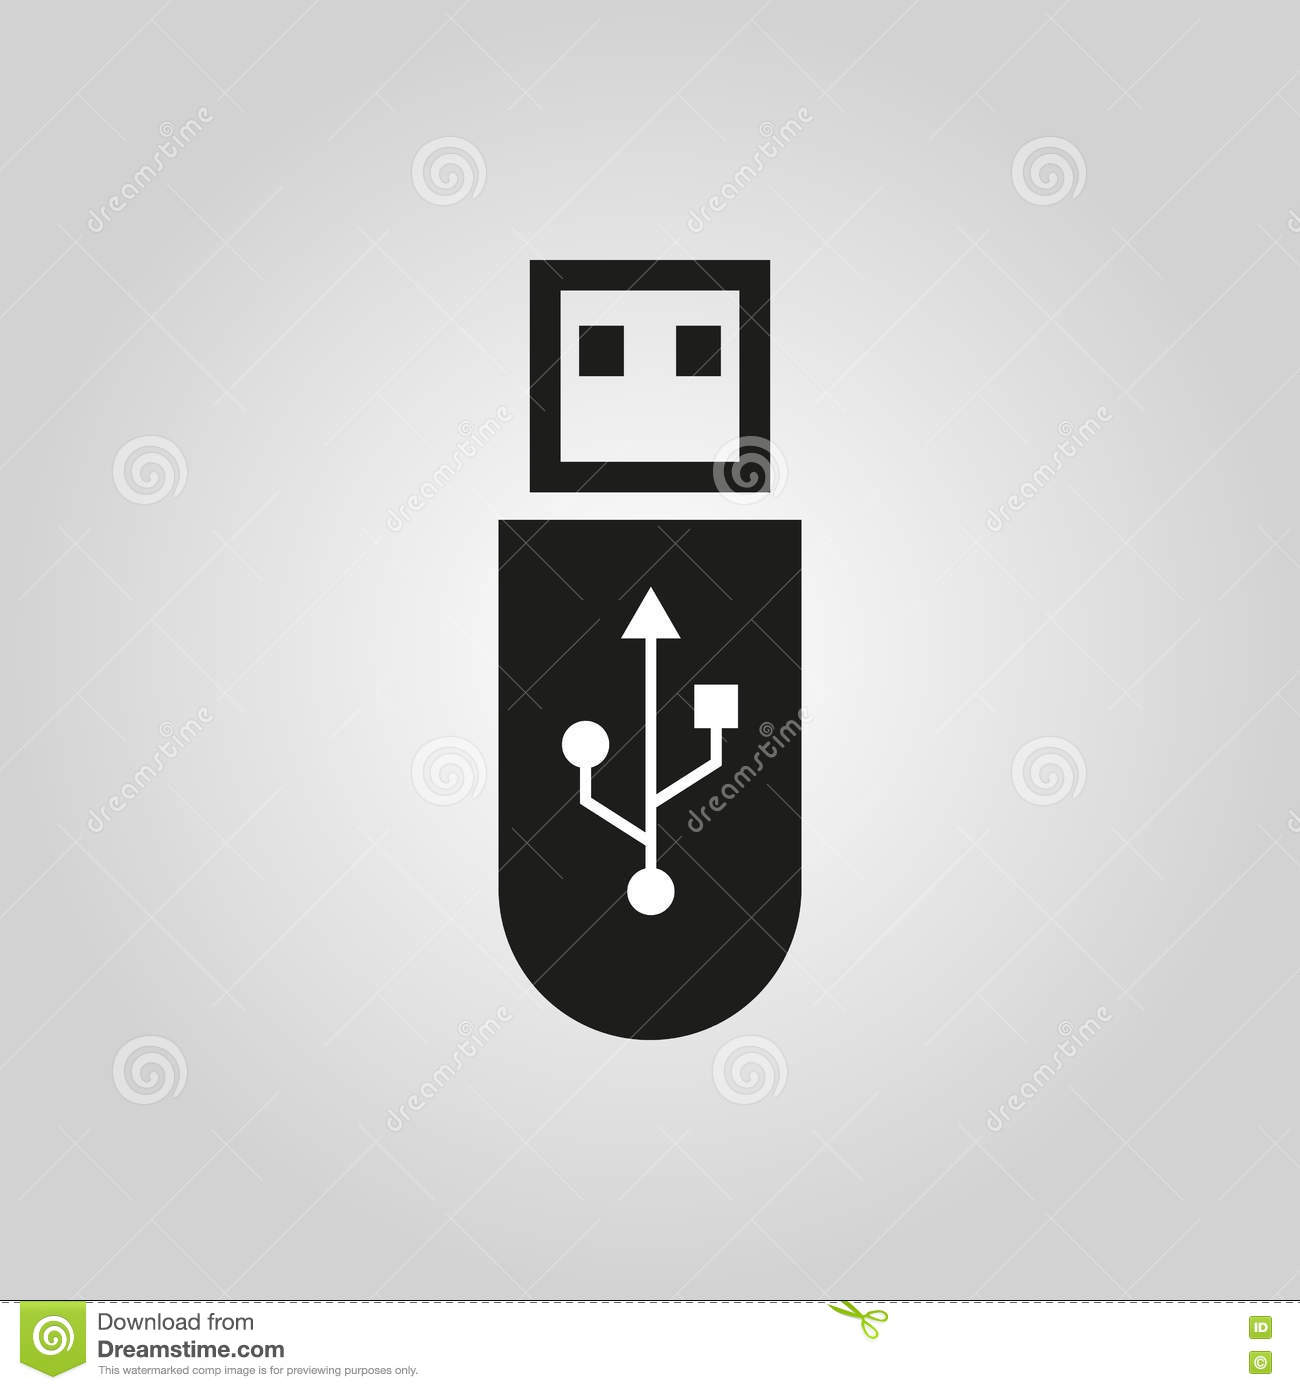 The usb icon transfer and connection data usb symbol ui web the usb icon transfer and connection data symbol ui web logo biocorpaavc Images